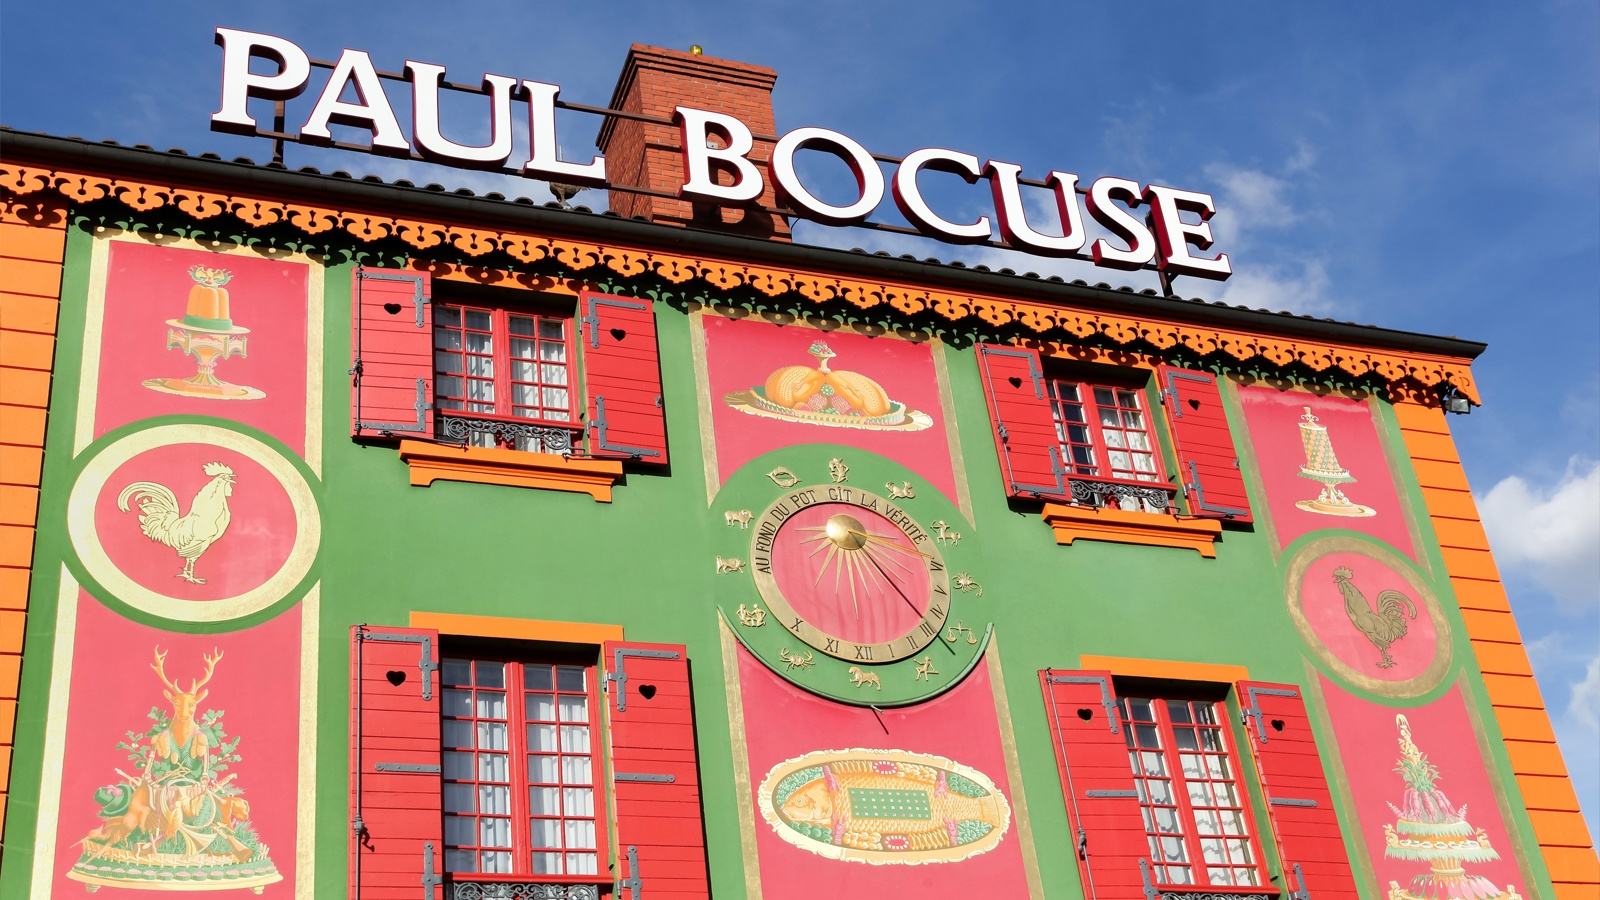 bachiller_frances_paul_bocuse.jpg